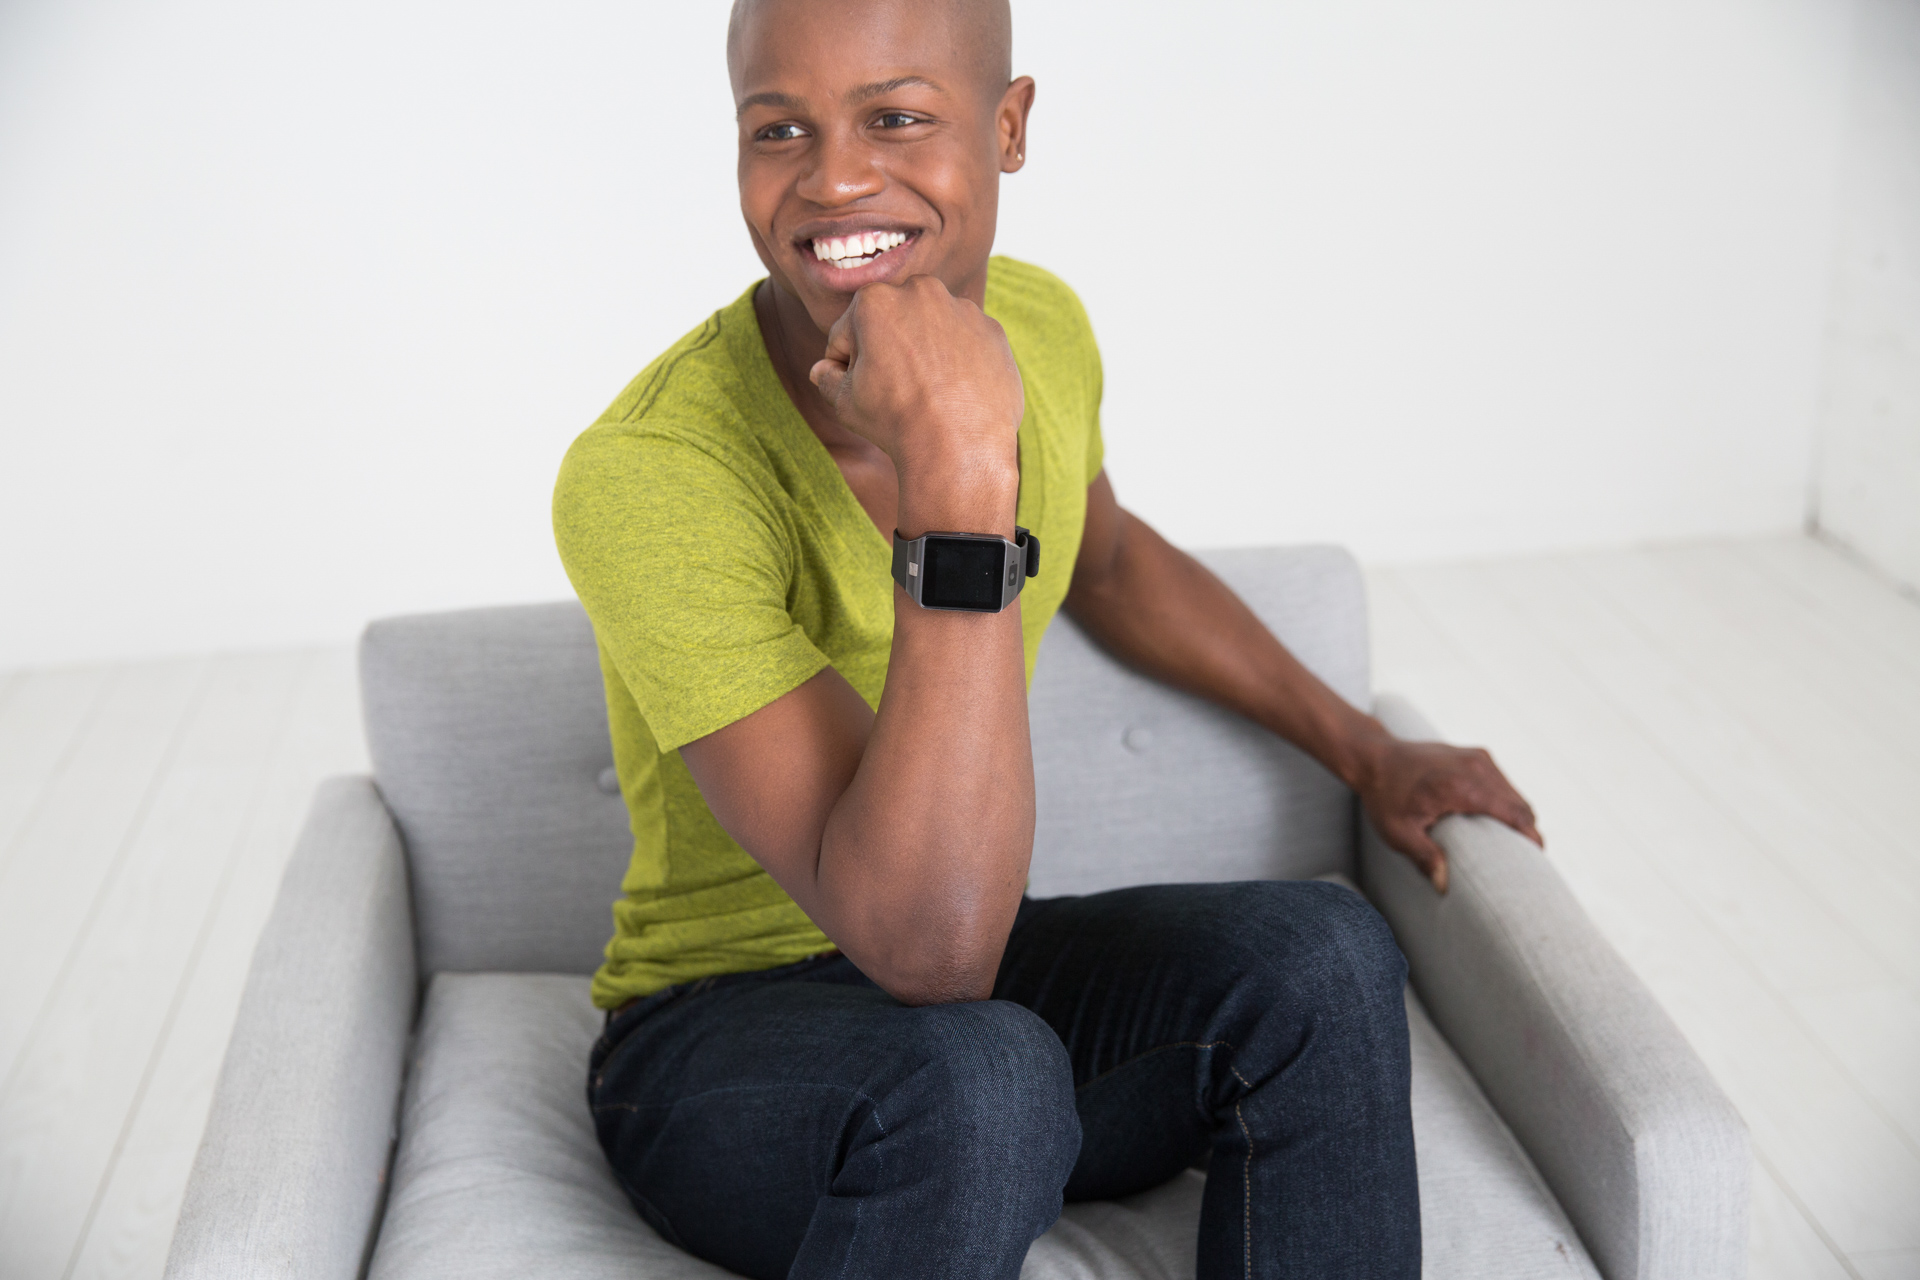 Man modeling smart watch product